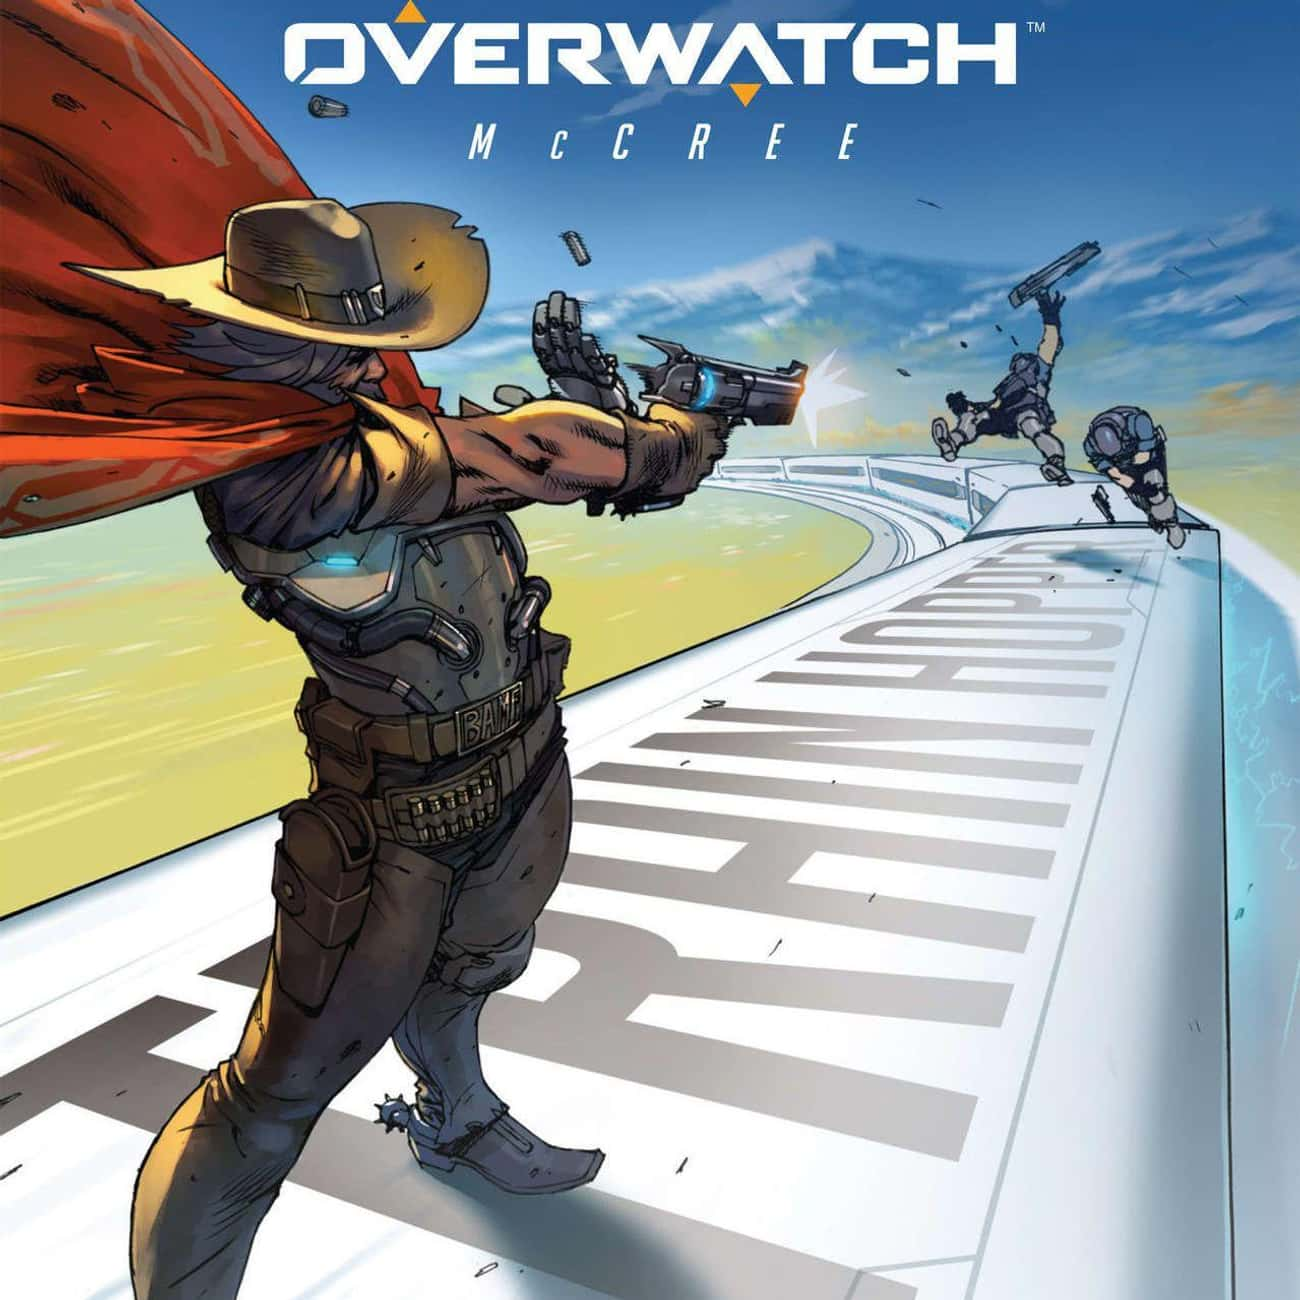 Train Hopper is listed (or ranked) 3 on the list The Best Overwatch Comics, Ranked